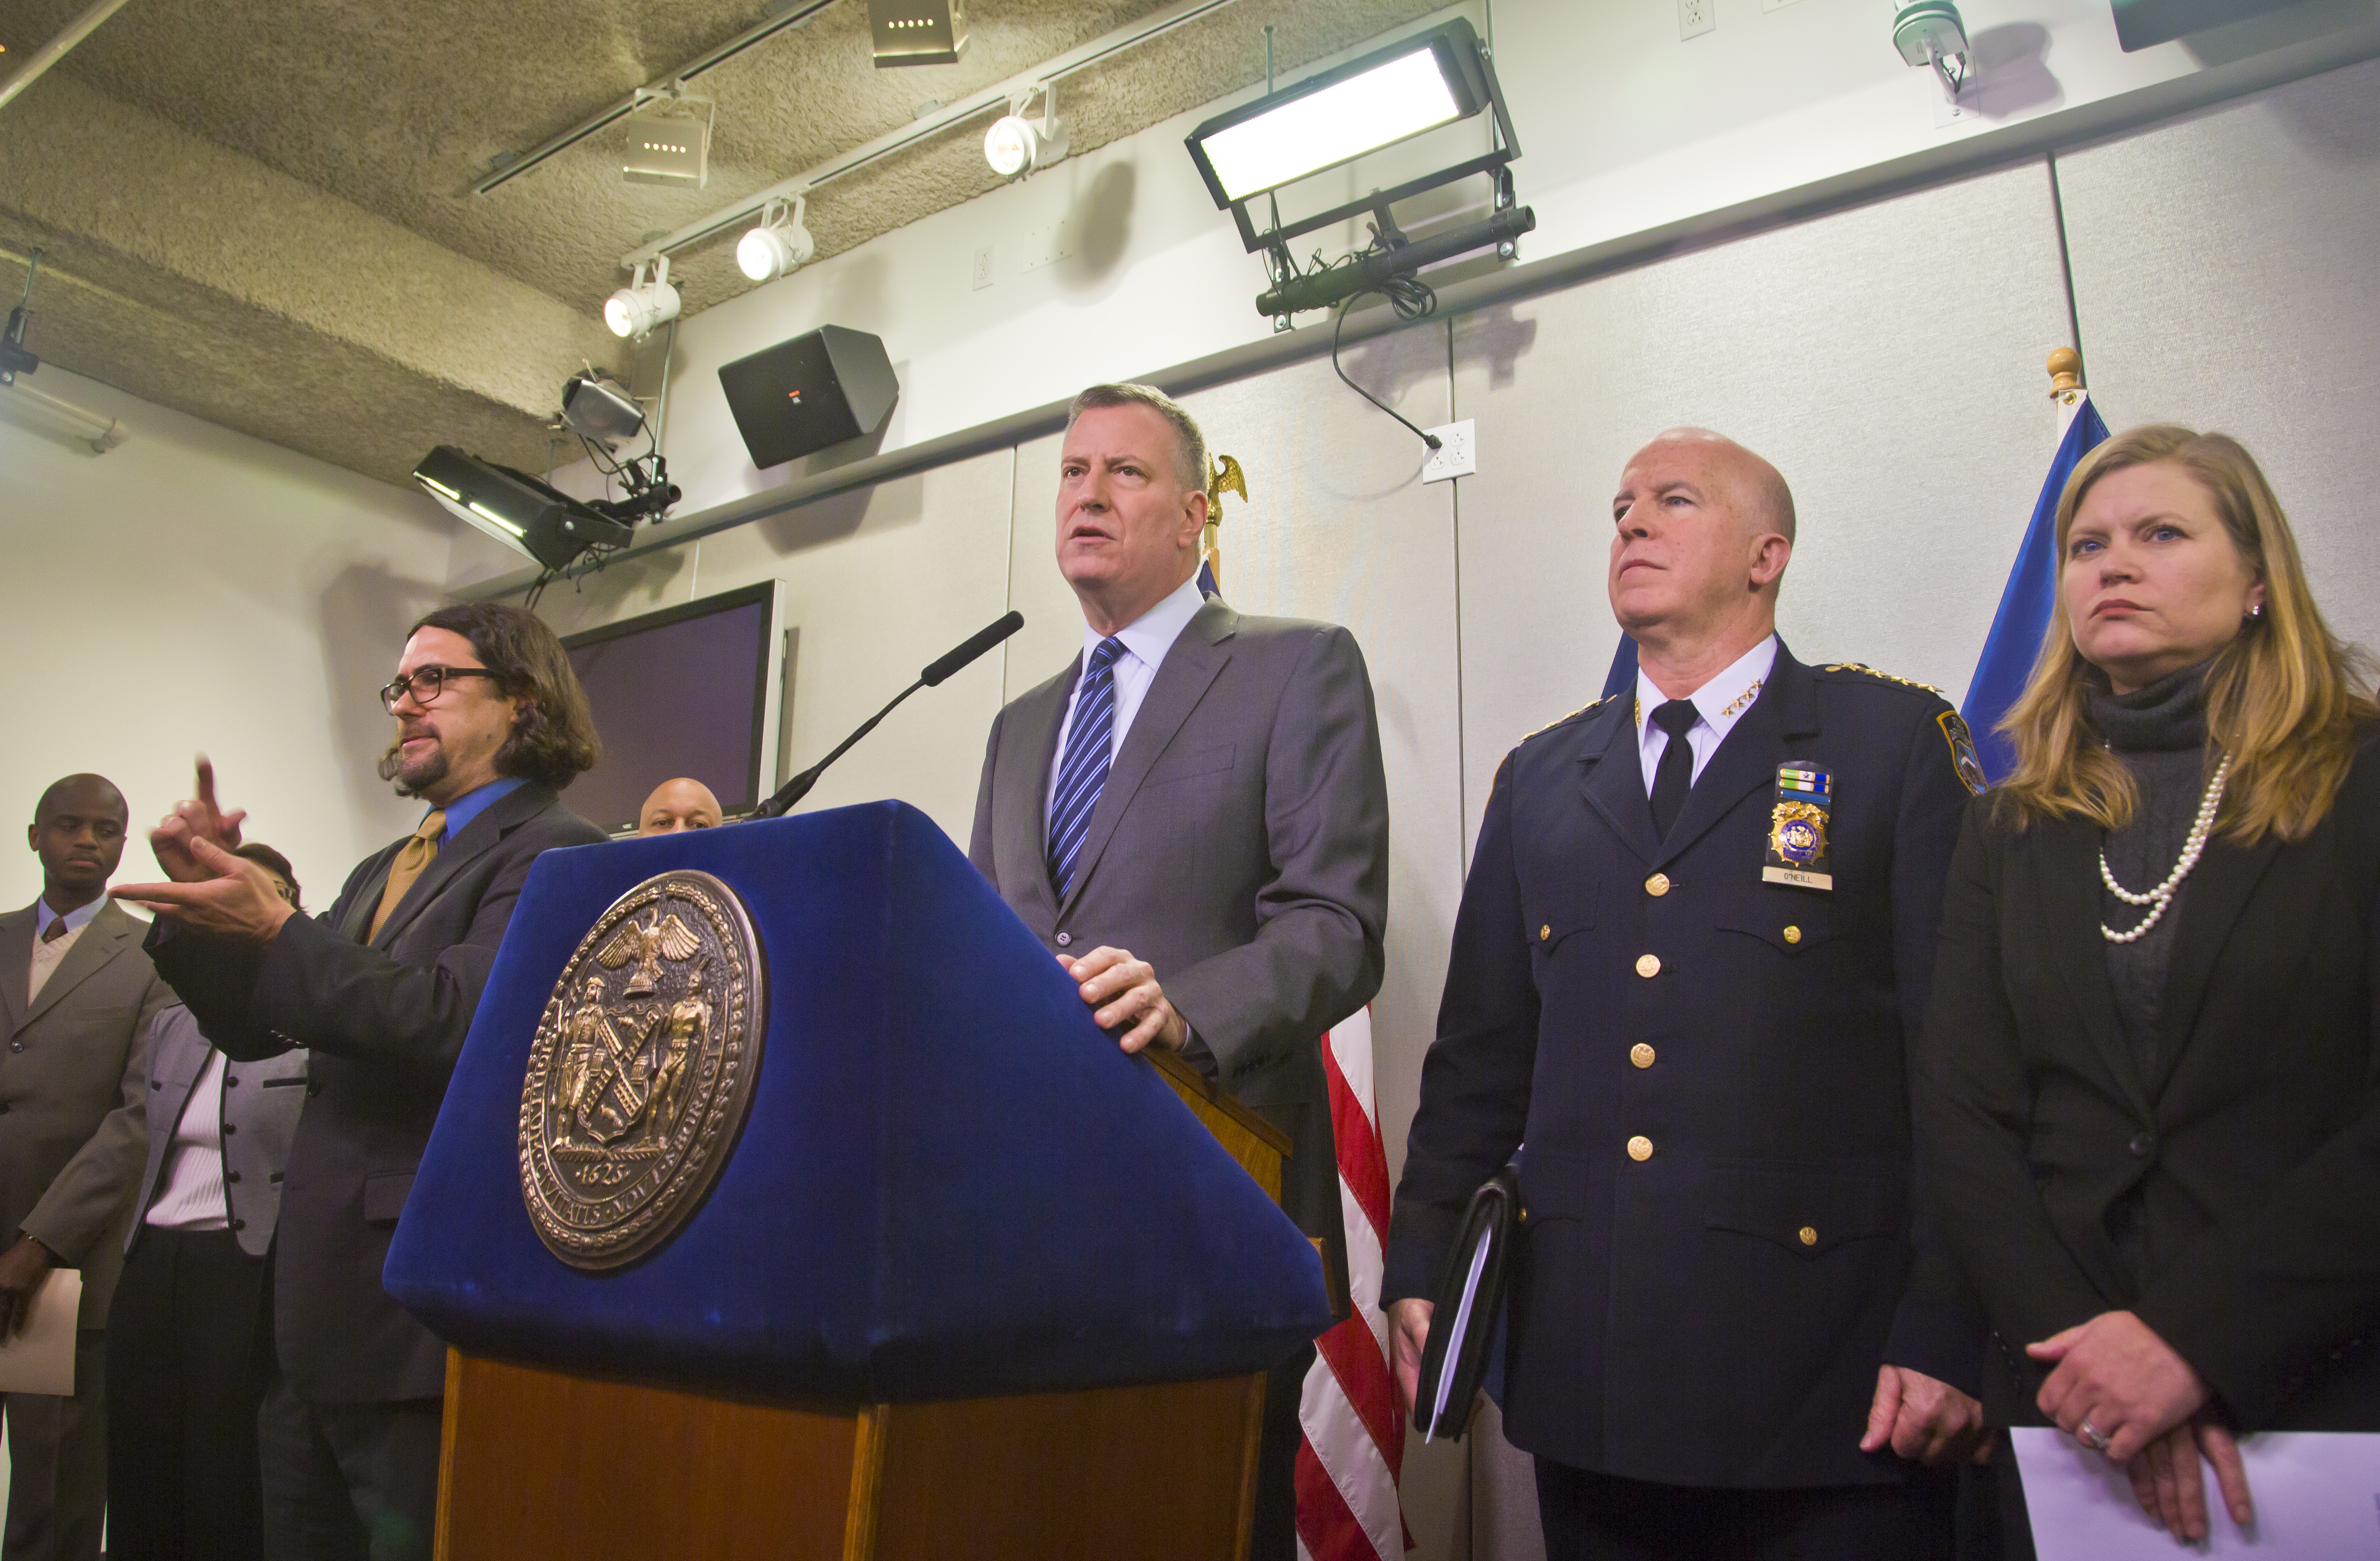 New York City Mayor Bill de Blasio, center, and top city officials hold press conference at the city's Office of Emergency Management, Monday, Jan. 26, 2015, in New York